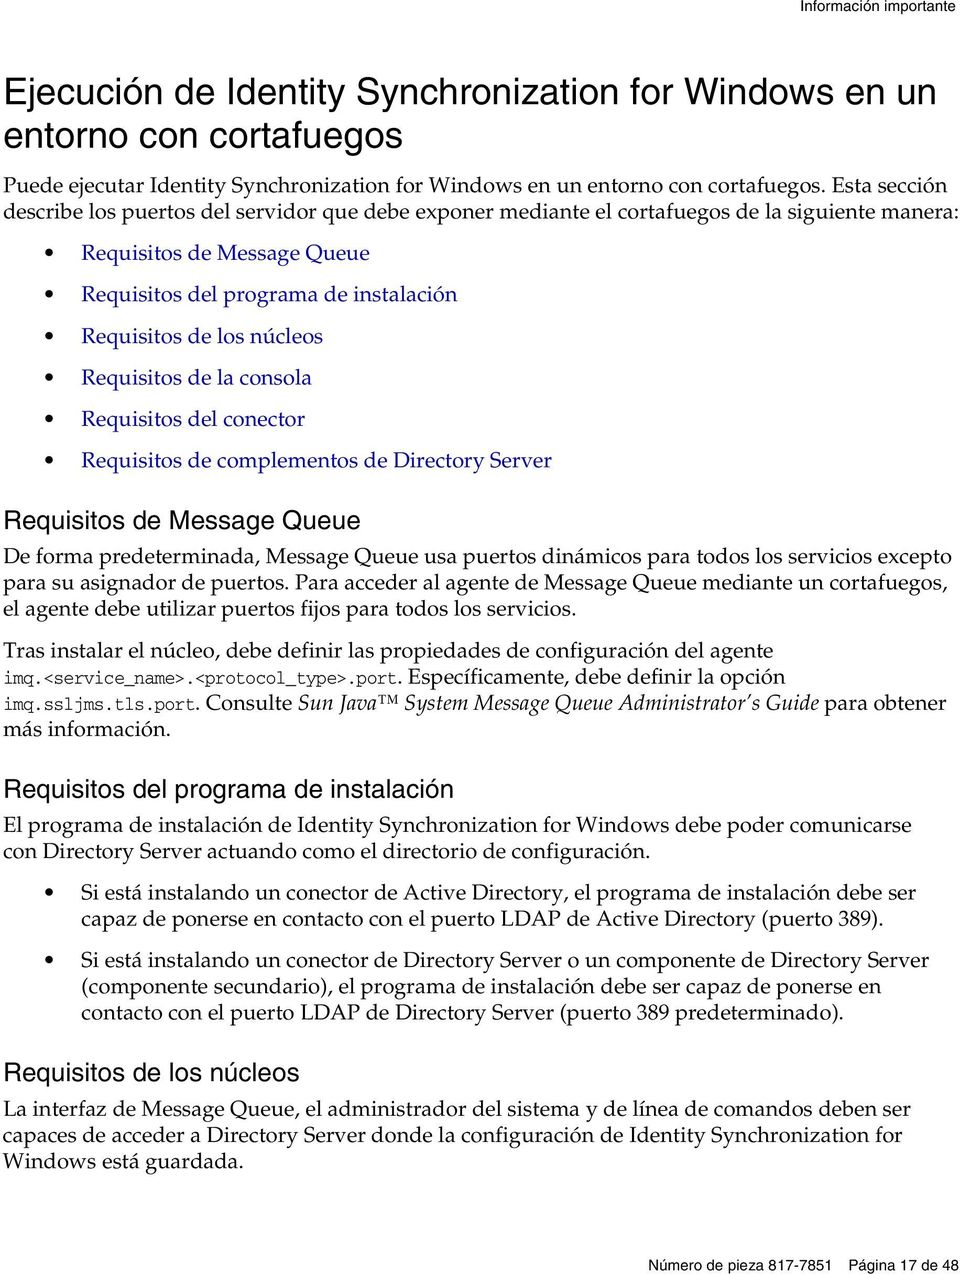 núcleos Requisitos de la consola Requisitos del conector Requisitos de complementos de Directory Server Requisitos de Message Queue De forma predeterminada, Message Queue usa puertos dinámicos para